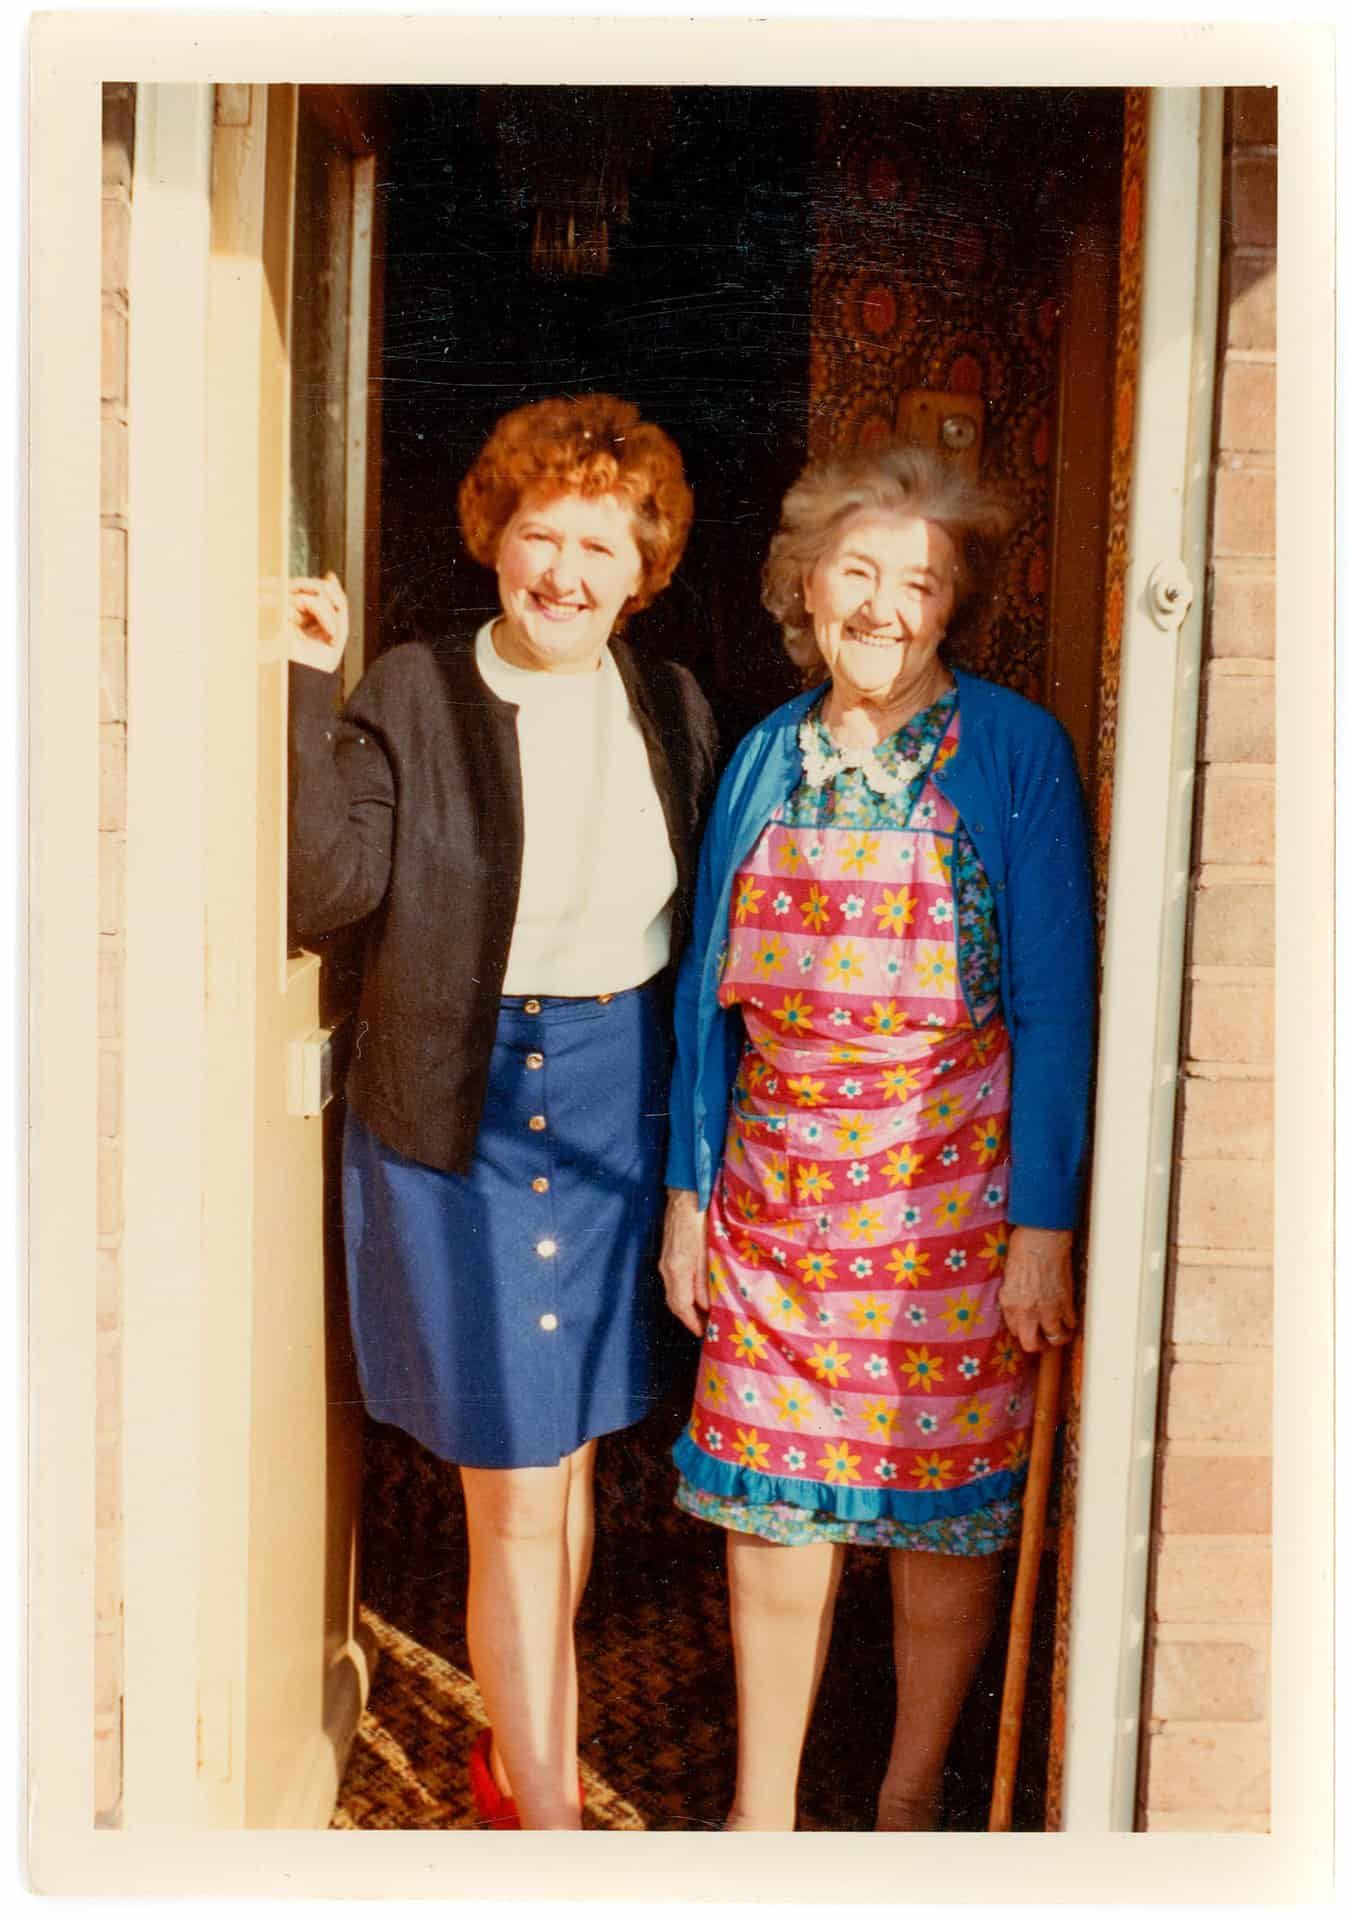 Mom and Nan on the doorstep of their house in Hateley Heath in the 1970s